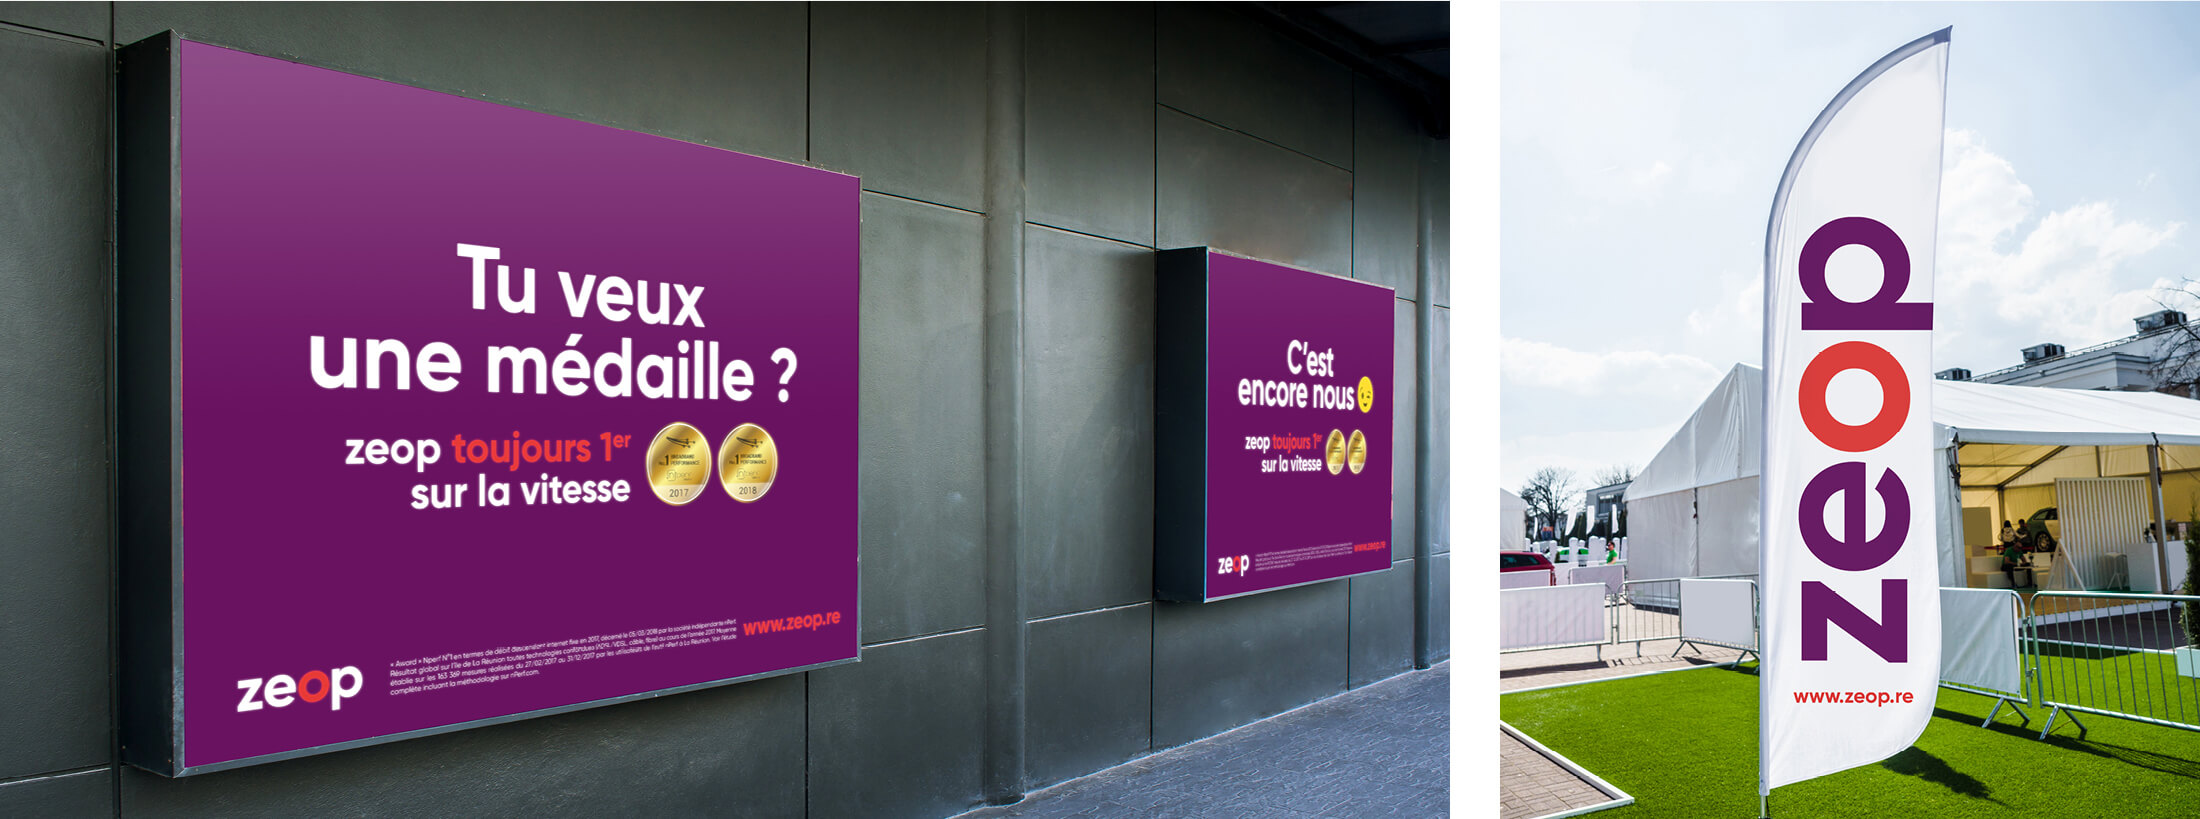 Campagne institutionnelle - Agence de pub Zoorit